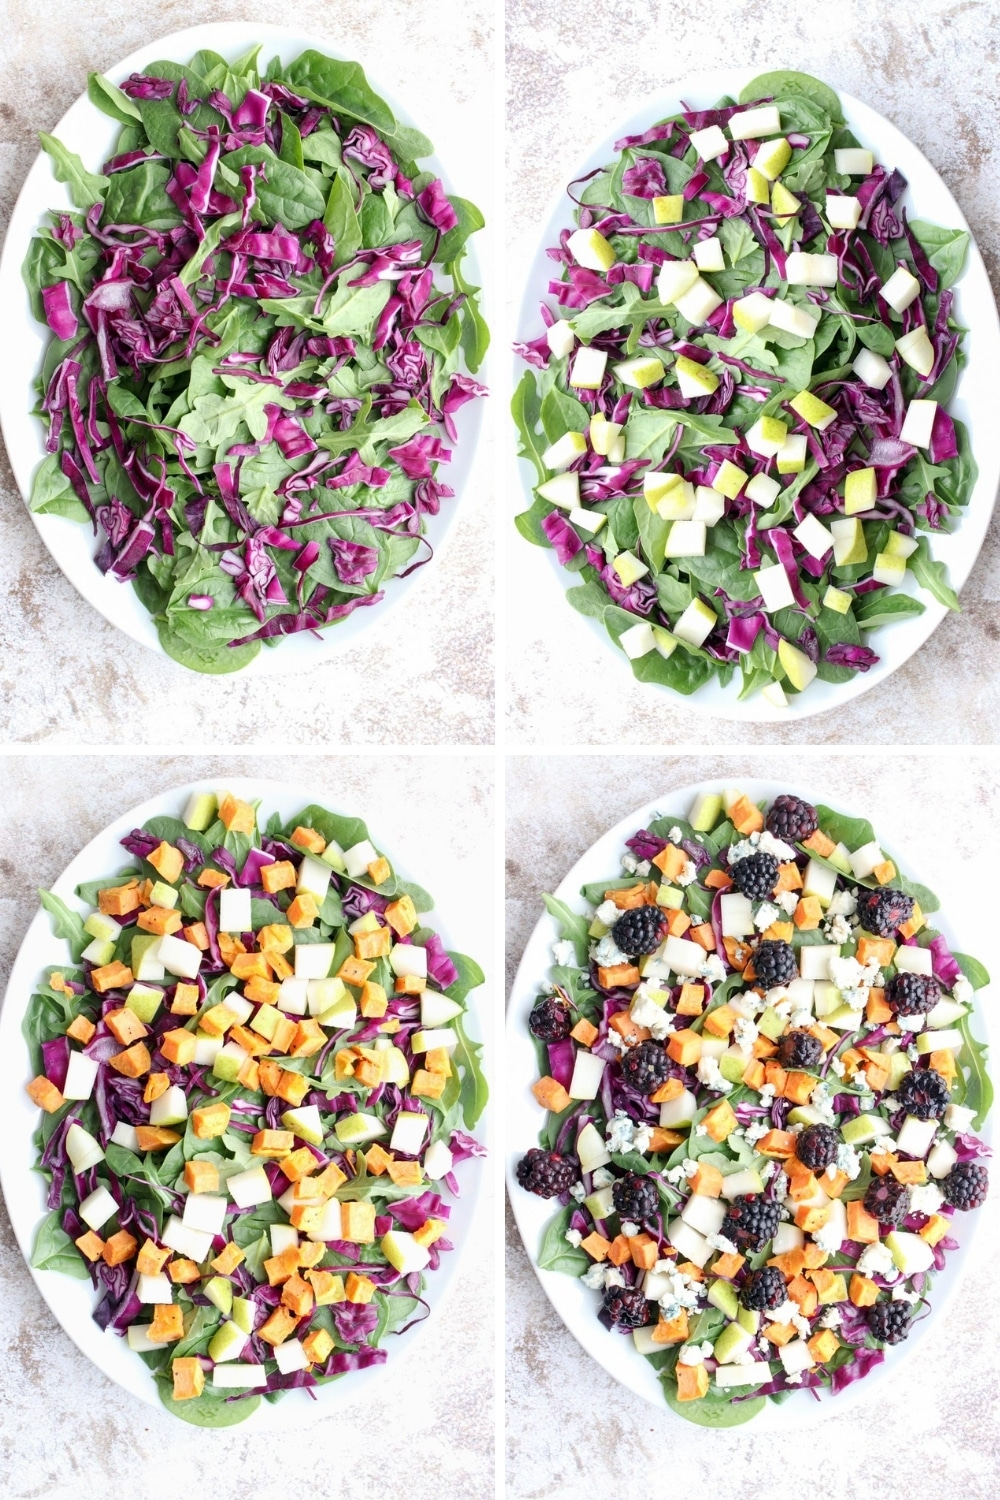 Photo showing four steps to assemble the harvest salad